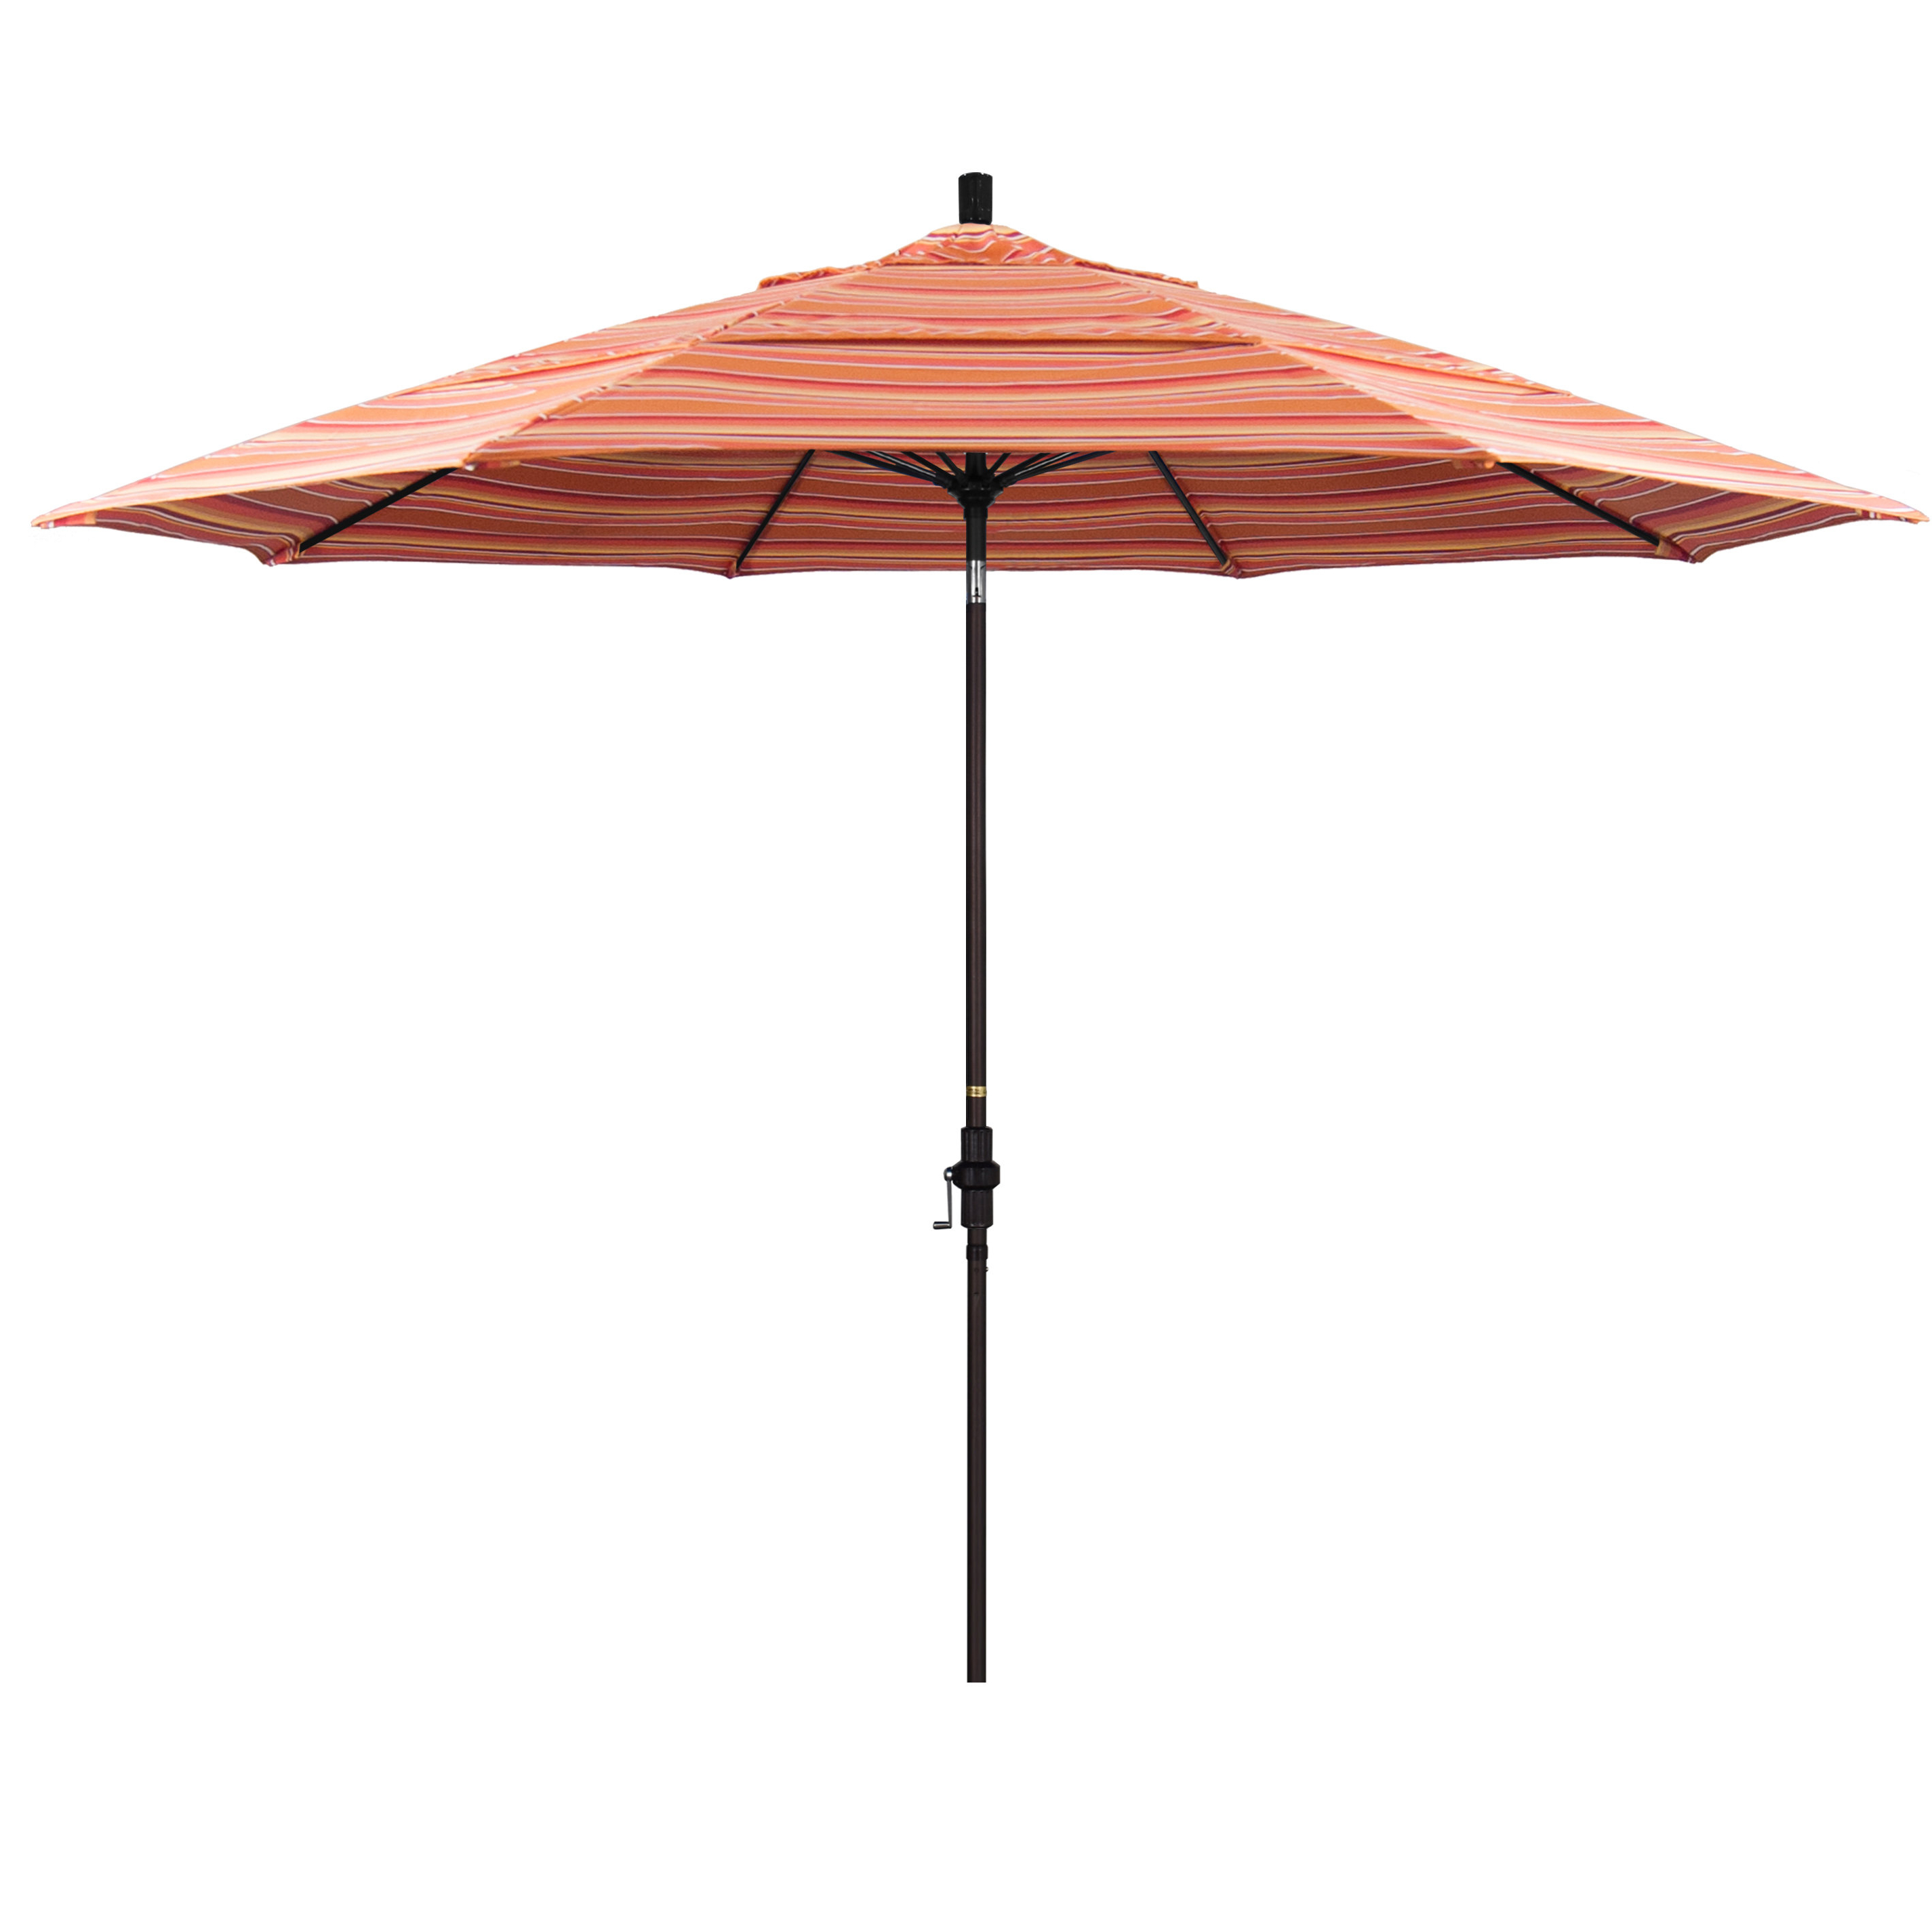 Widely Used Muldoon 11' Market Sunbrella Umbrella In Wiebe Auto Tilt Square Market Sunbrella Umbrellas (View 12 of 20)